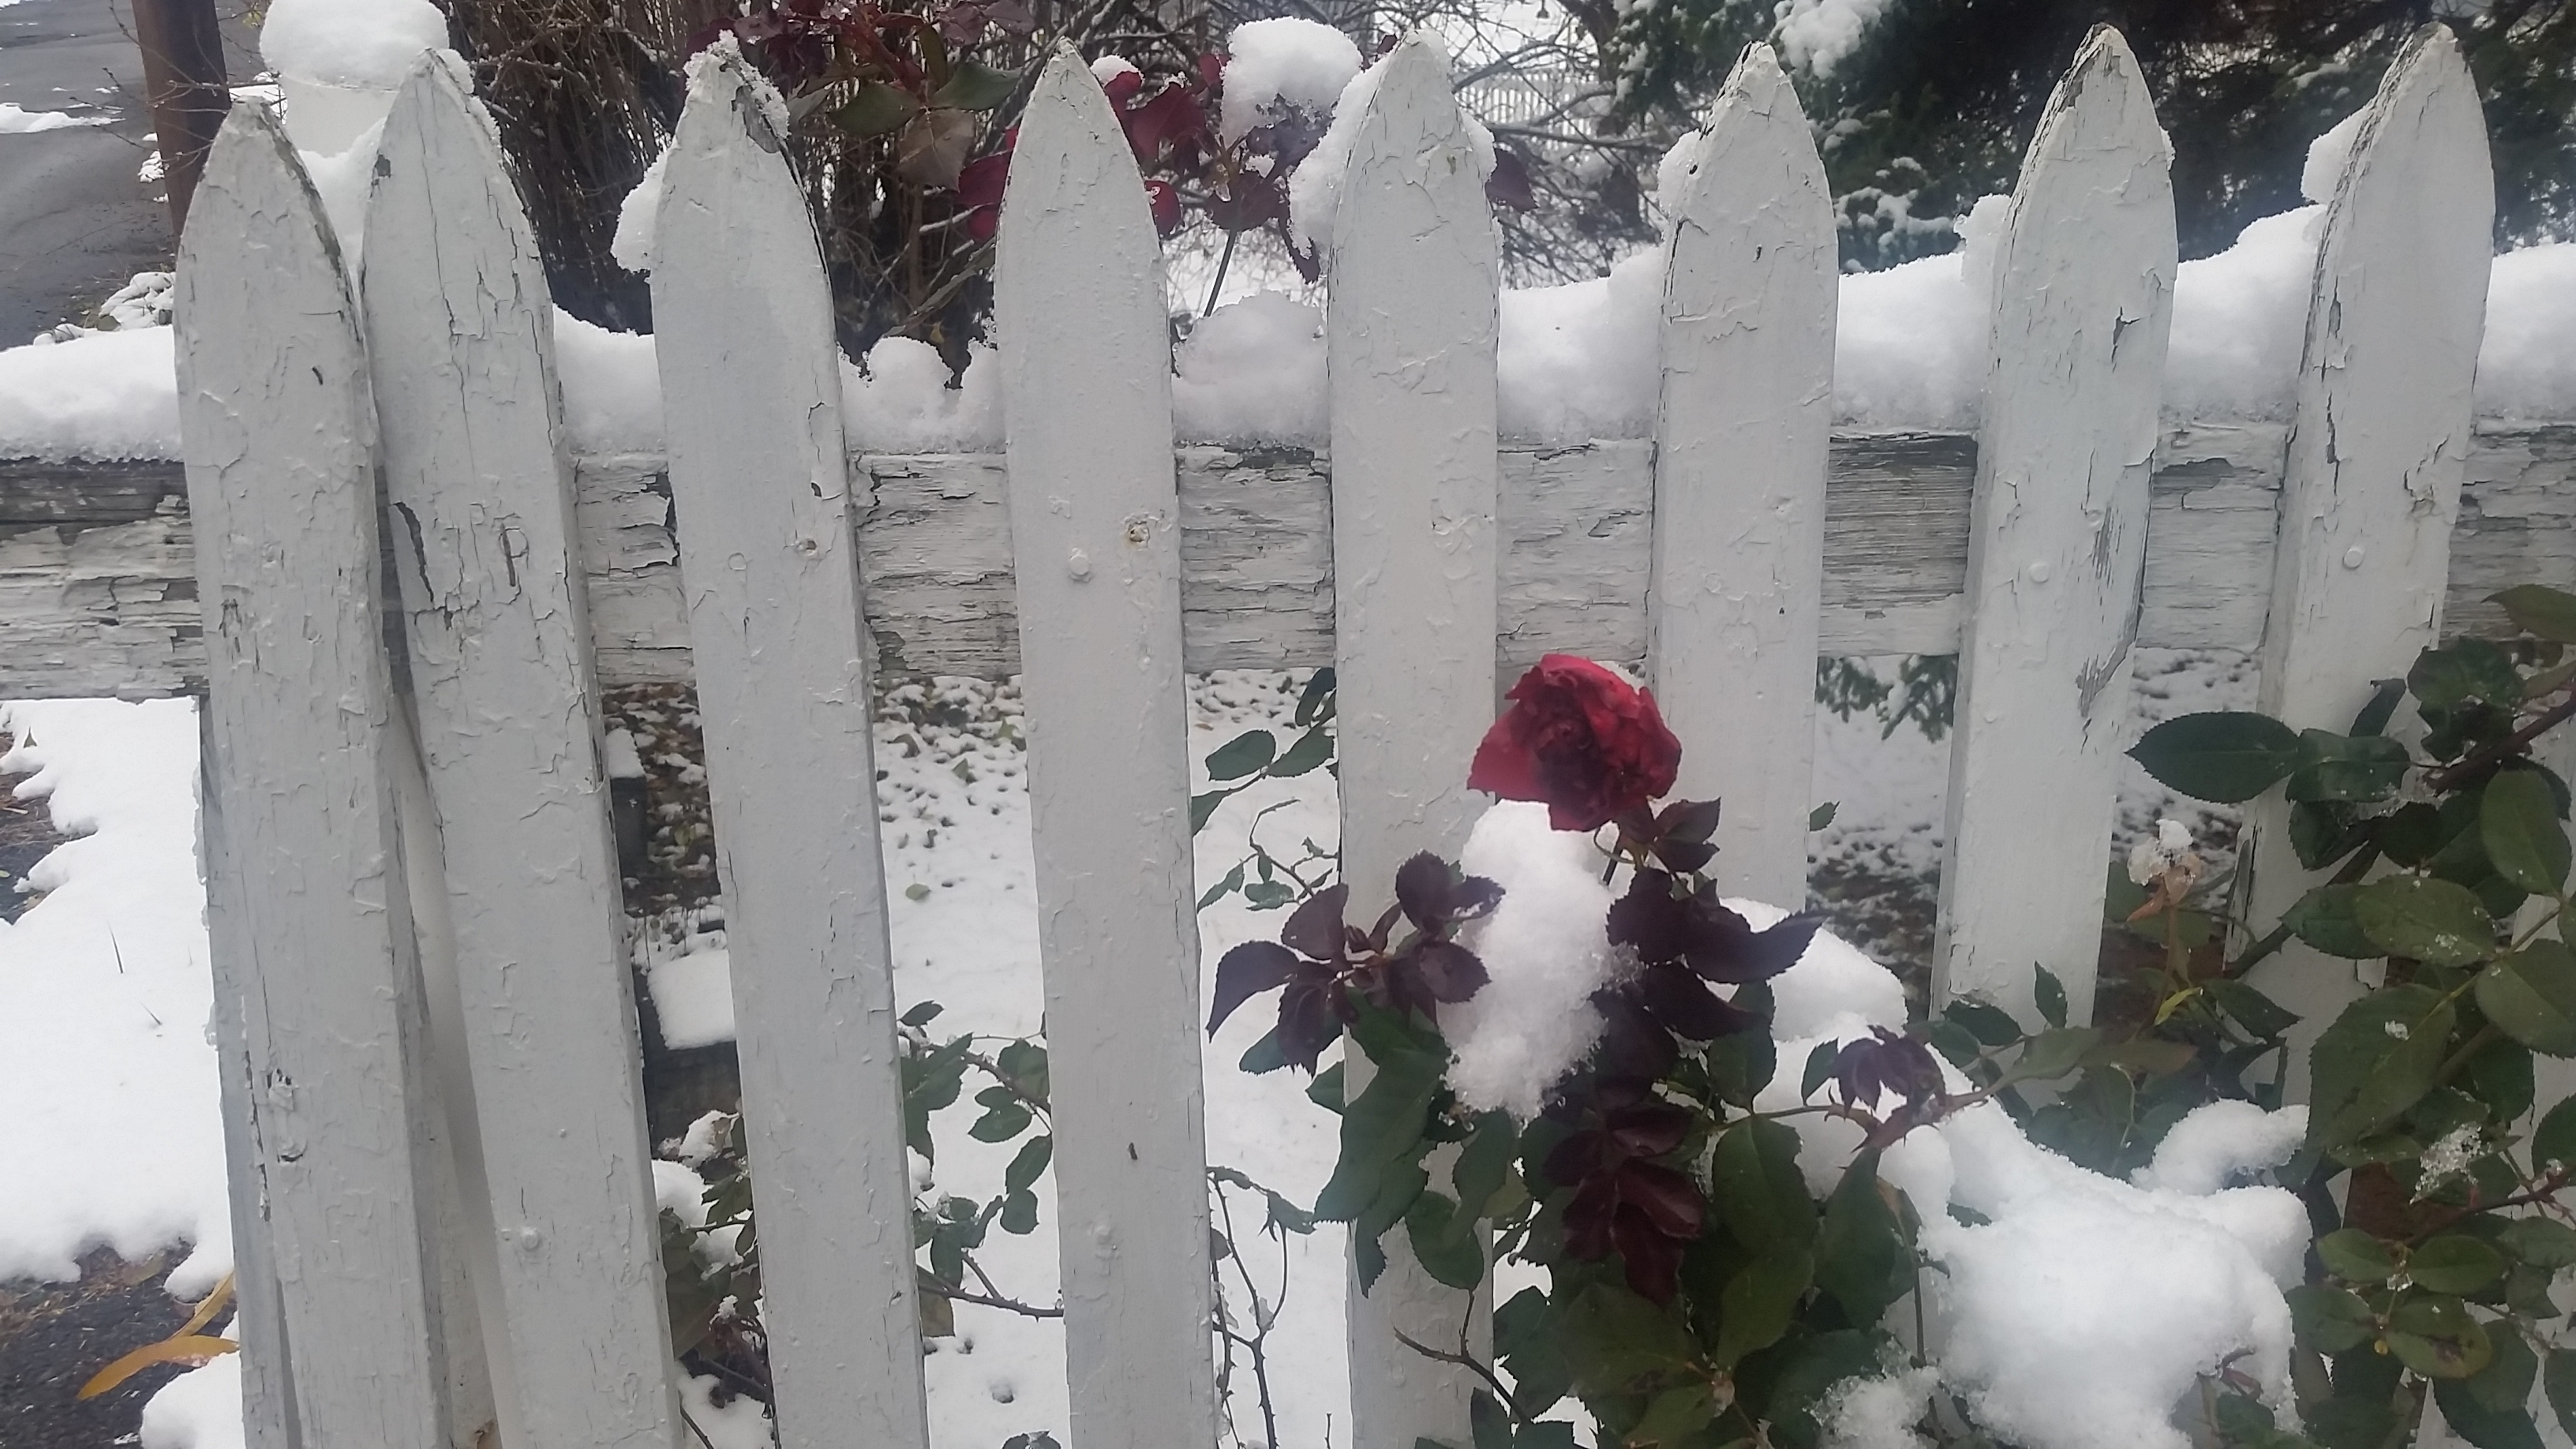 Winter-White-Fence-Snow-Rose